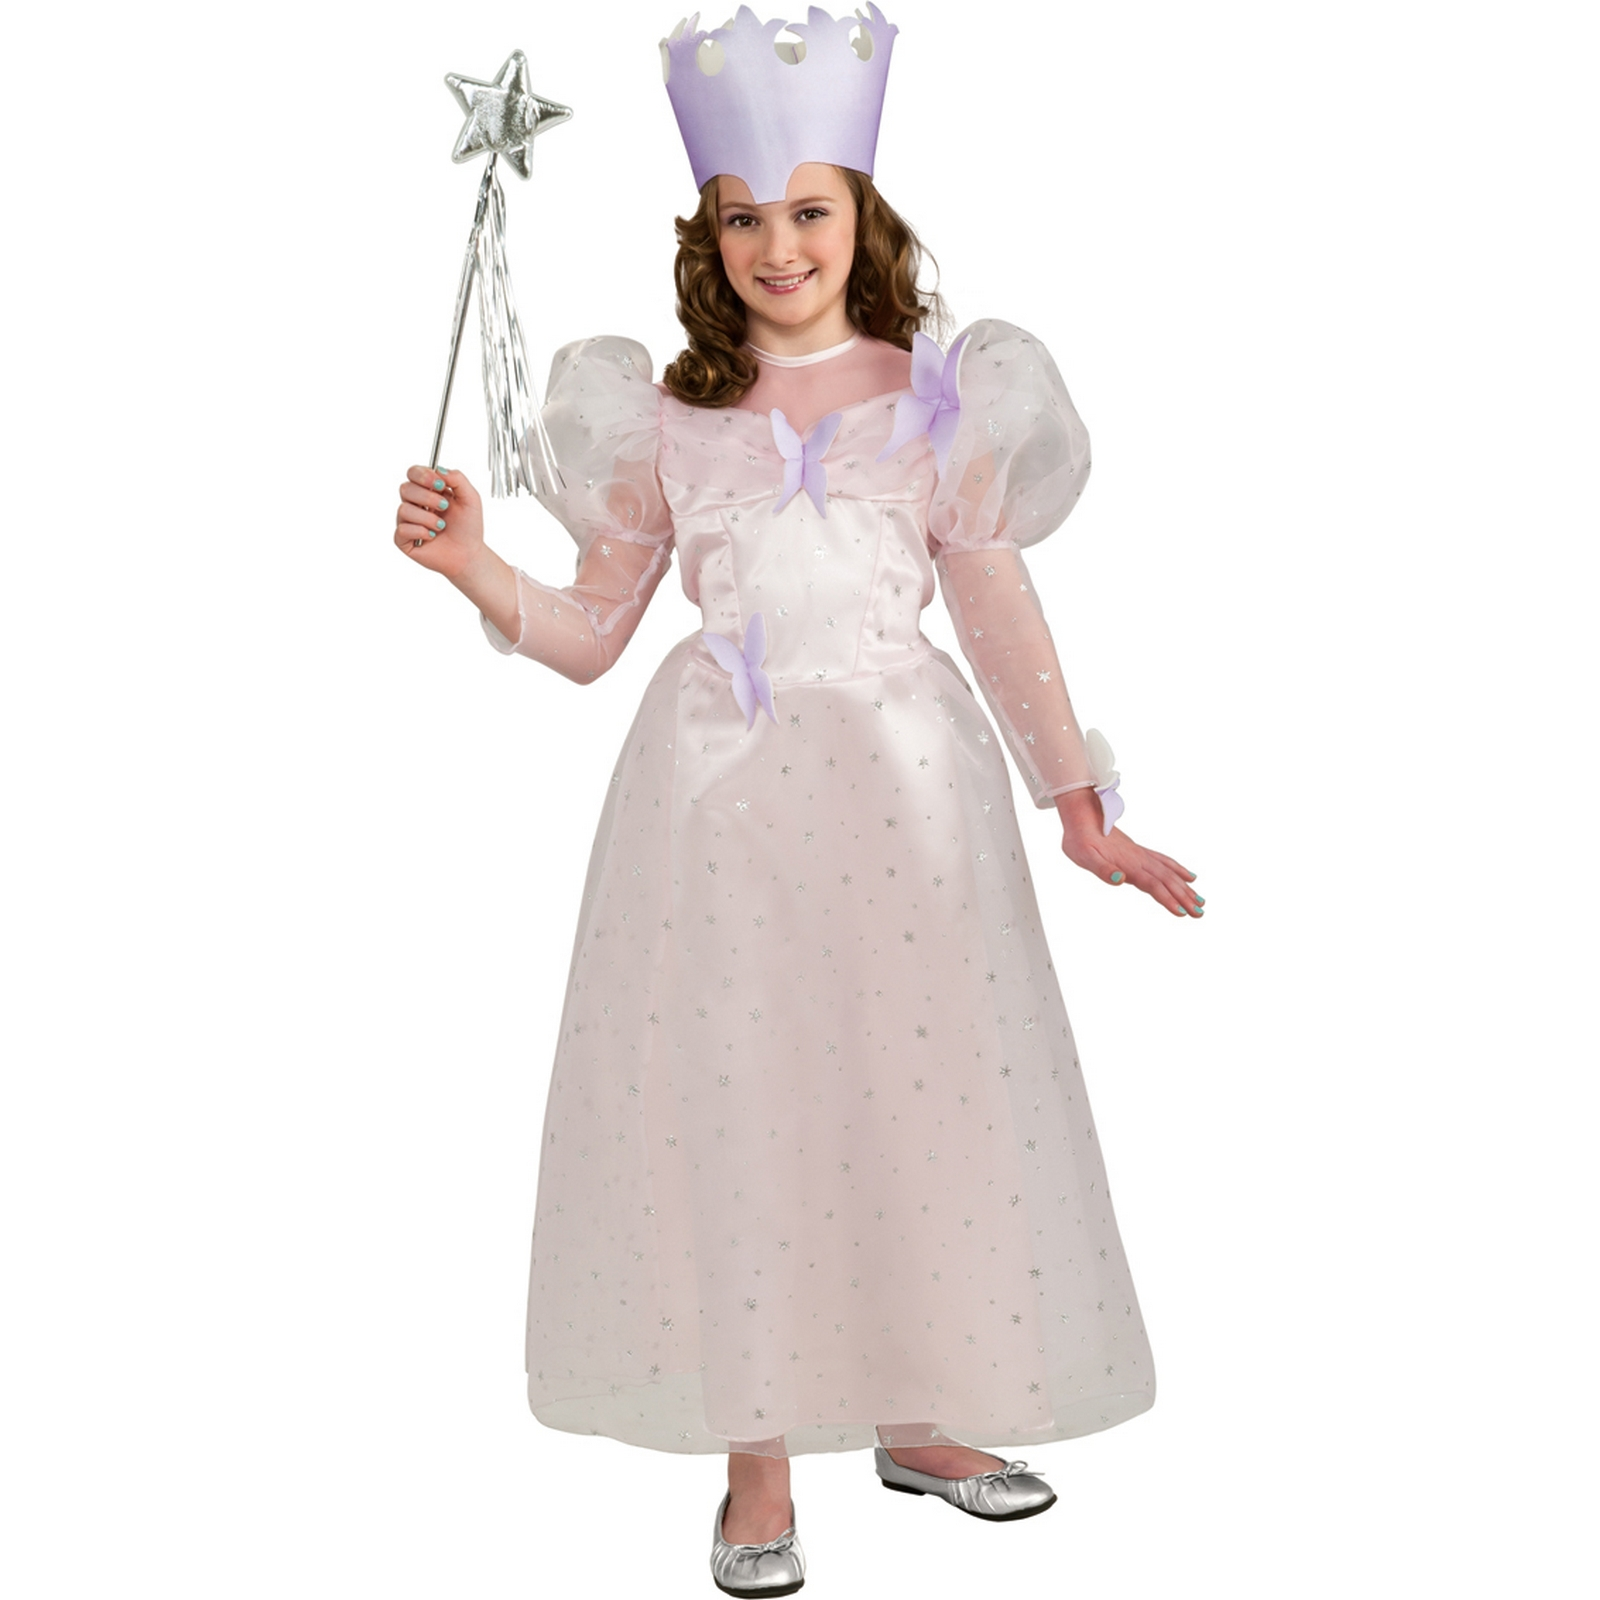 Glinda the Good Witch Costume Girls Fancy Dress Child The Wizard of Oz